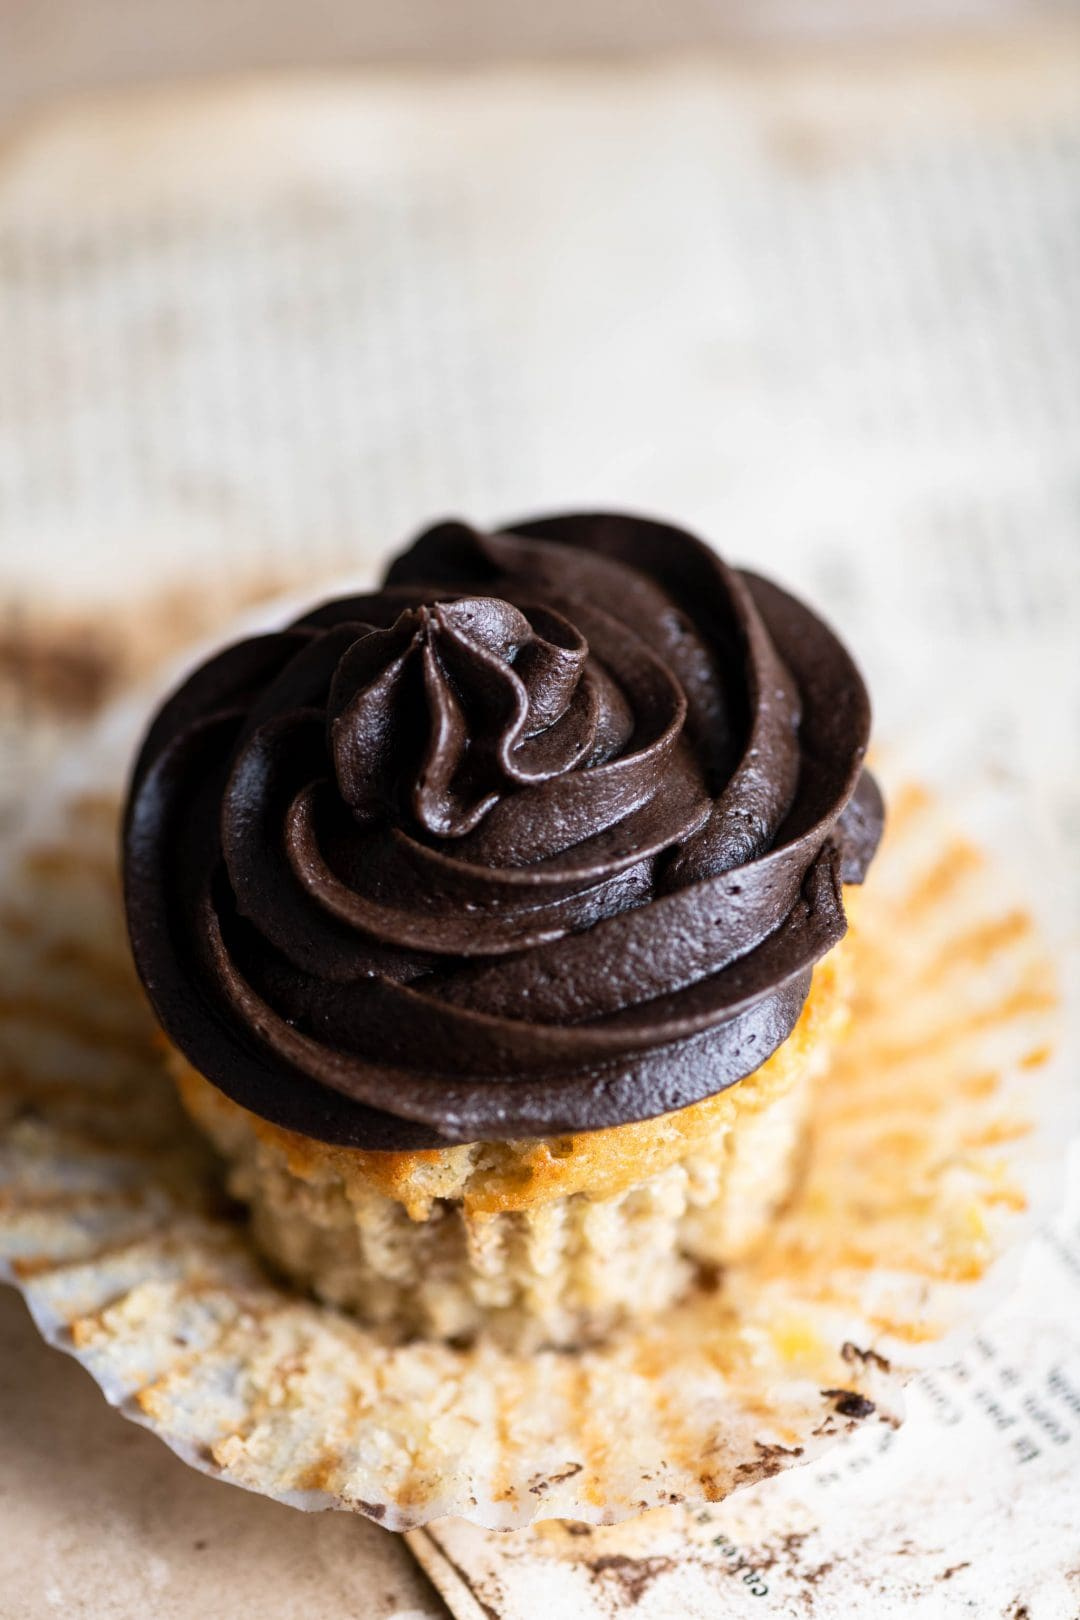 Banana Cupcake with Chocolate Espresso Buttercream Frosting